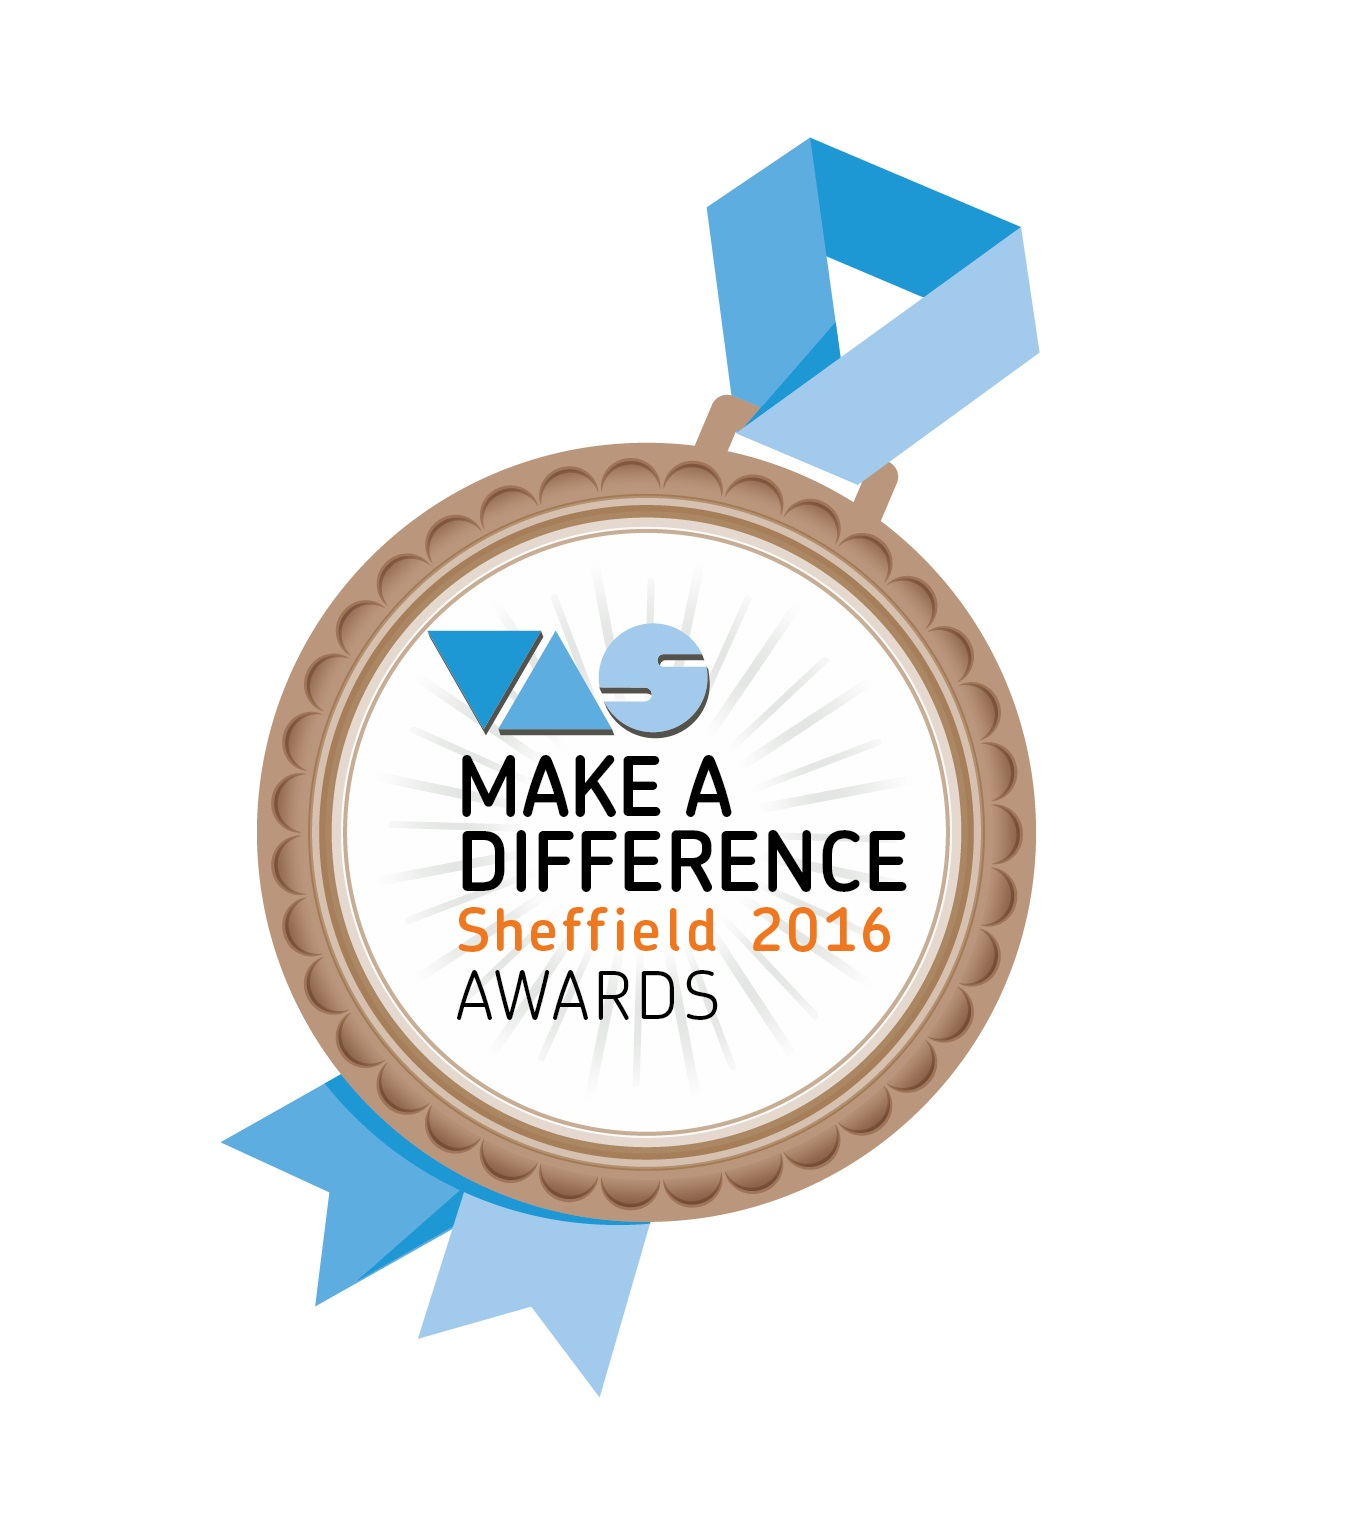 VAS_MakeADifferenceAwardsLogoMedium-01.jpg